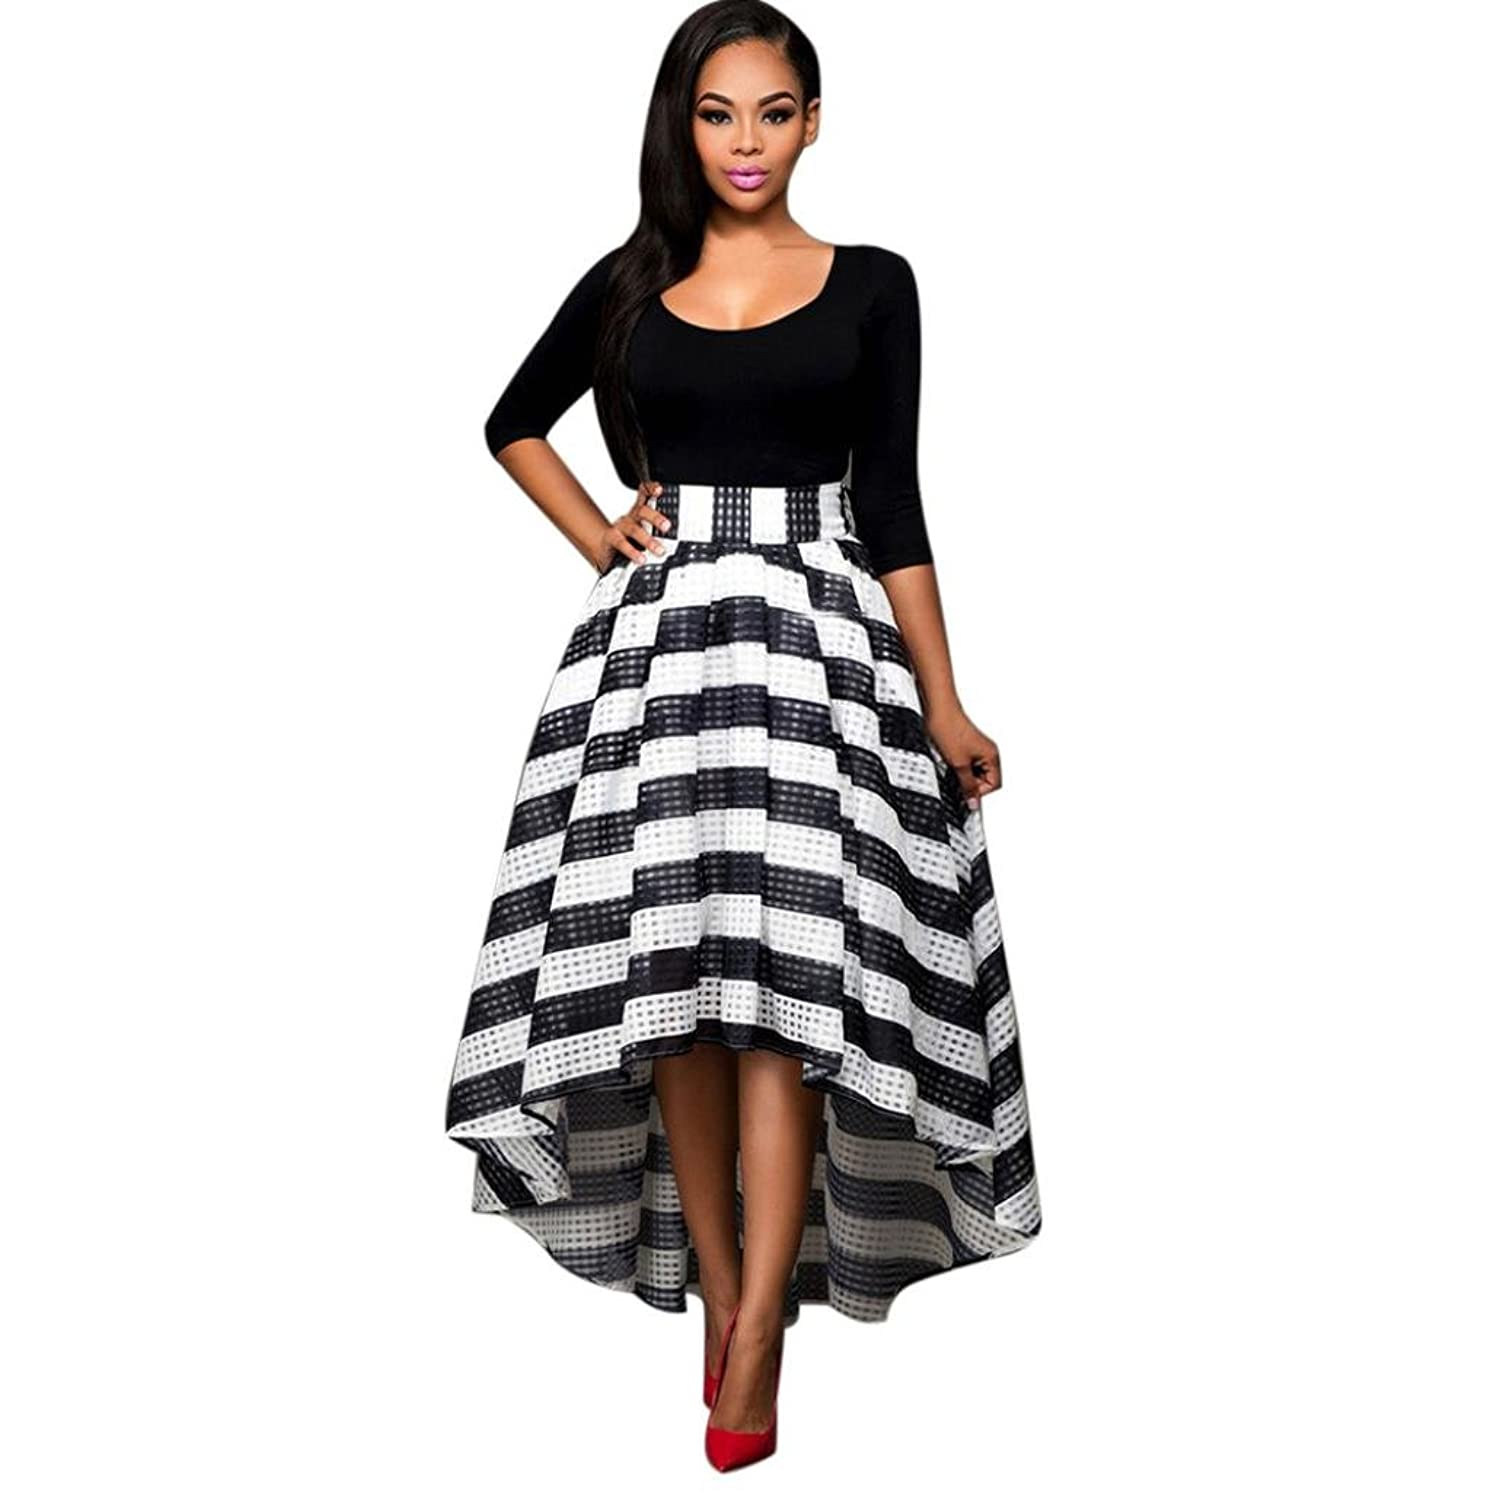 7fded65b105 ✿Simple But Stylish Design  slim fit black top collocation with striped  skirt which have bow tie detail at back